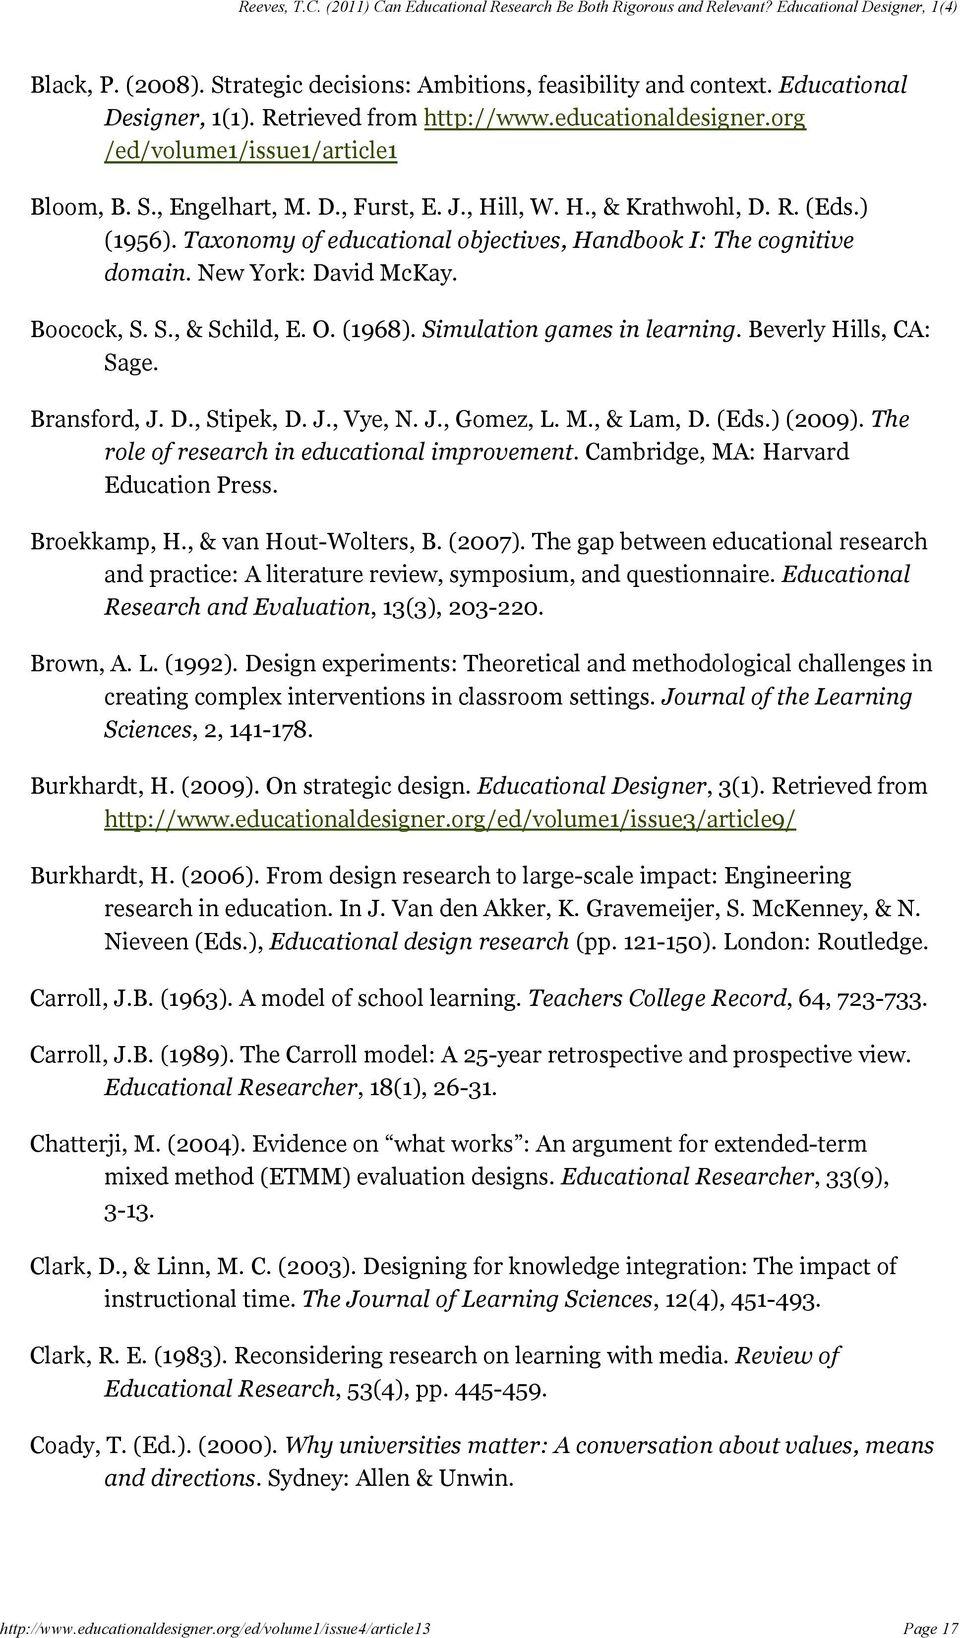 Simulation games in learning. Beverly Hills, CA: Sage. Bransford, J. D., Stipek, D. J., Vye, N. J., Gomez, L. M., & Lam, D. (Eds.) (2009). The role of research in educational improvement.